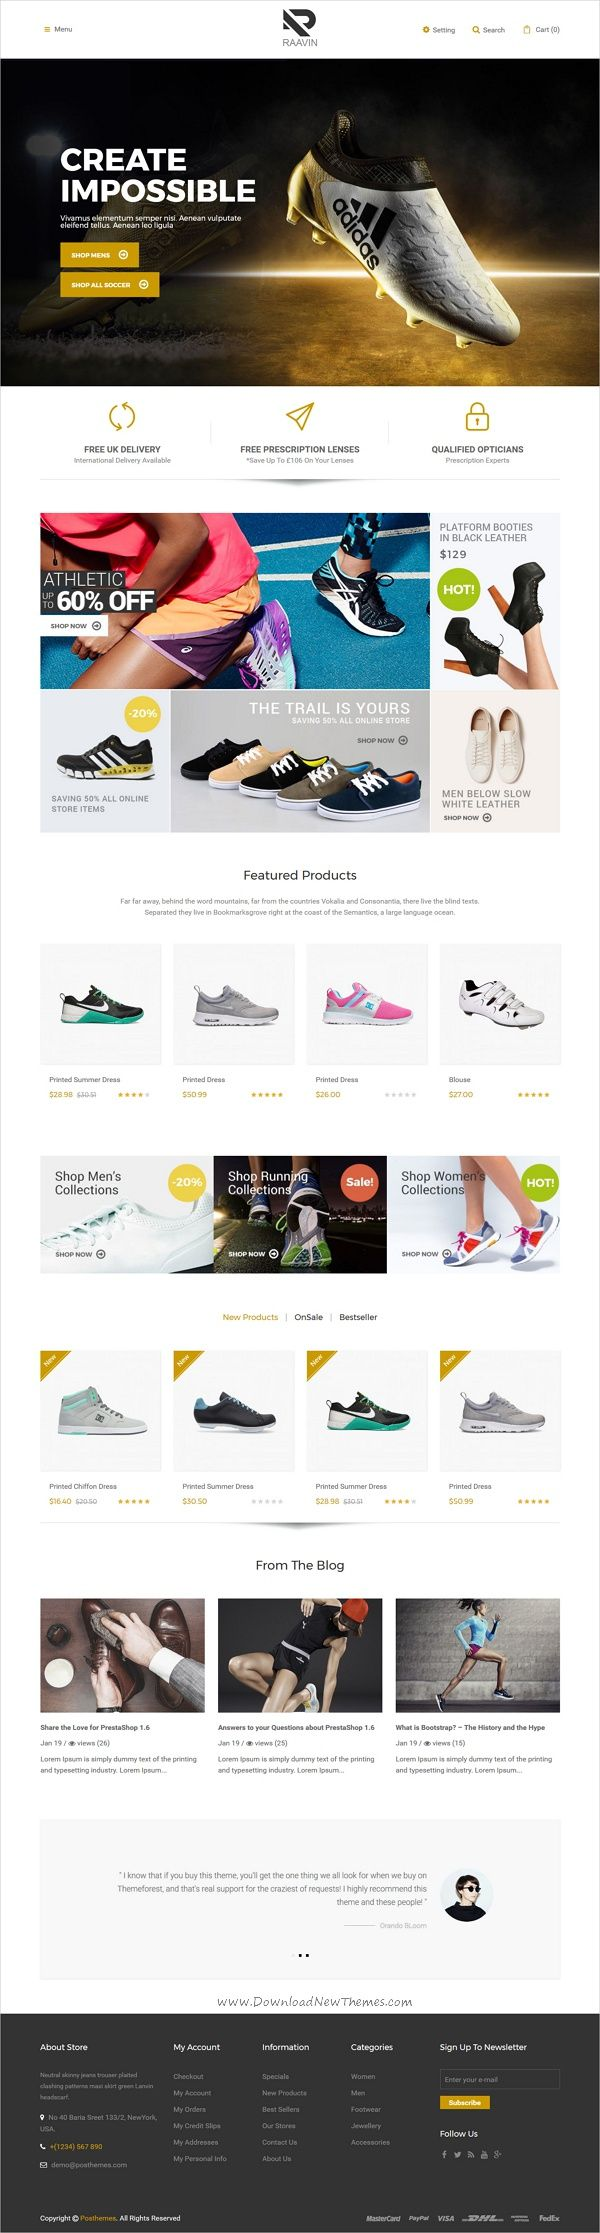 Raavin is a wonderful responsive #Prestashop theme for awesome #shoes store #eCommerce website with 3 unique homepage layouts download now➩ https://themeforest.net/item/raavin-shoes-responsive-prestashop-theme/19538786?ref=Datasata